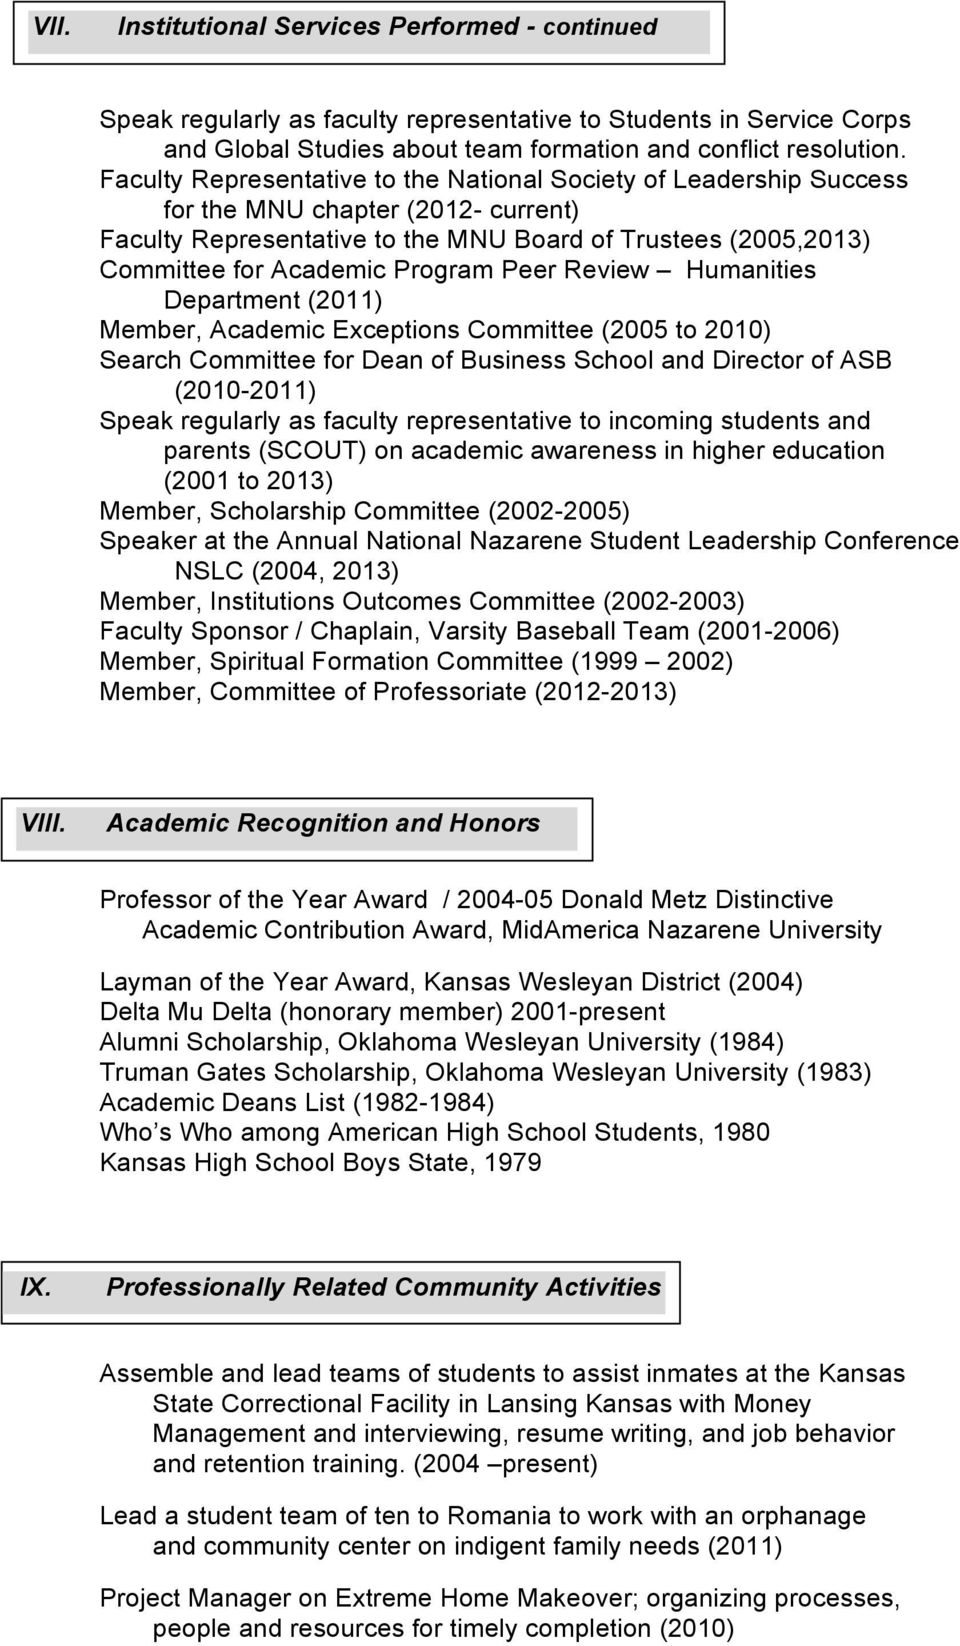 Peer Review Humanities Department (2011) Member, Academic Exceptions Committee (2005 to 2010) Search Committee for Dean of Business School and Director of ASB (2010-2011) Speak regularly as faculty